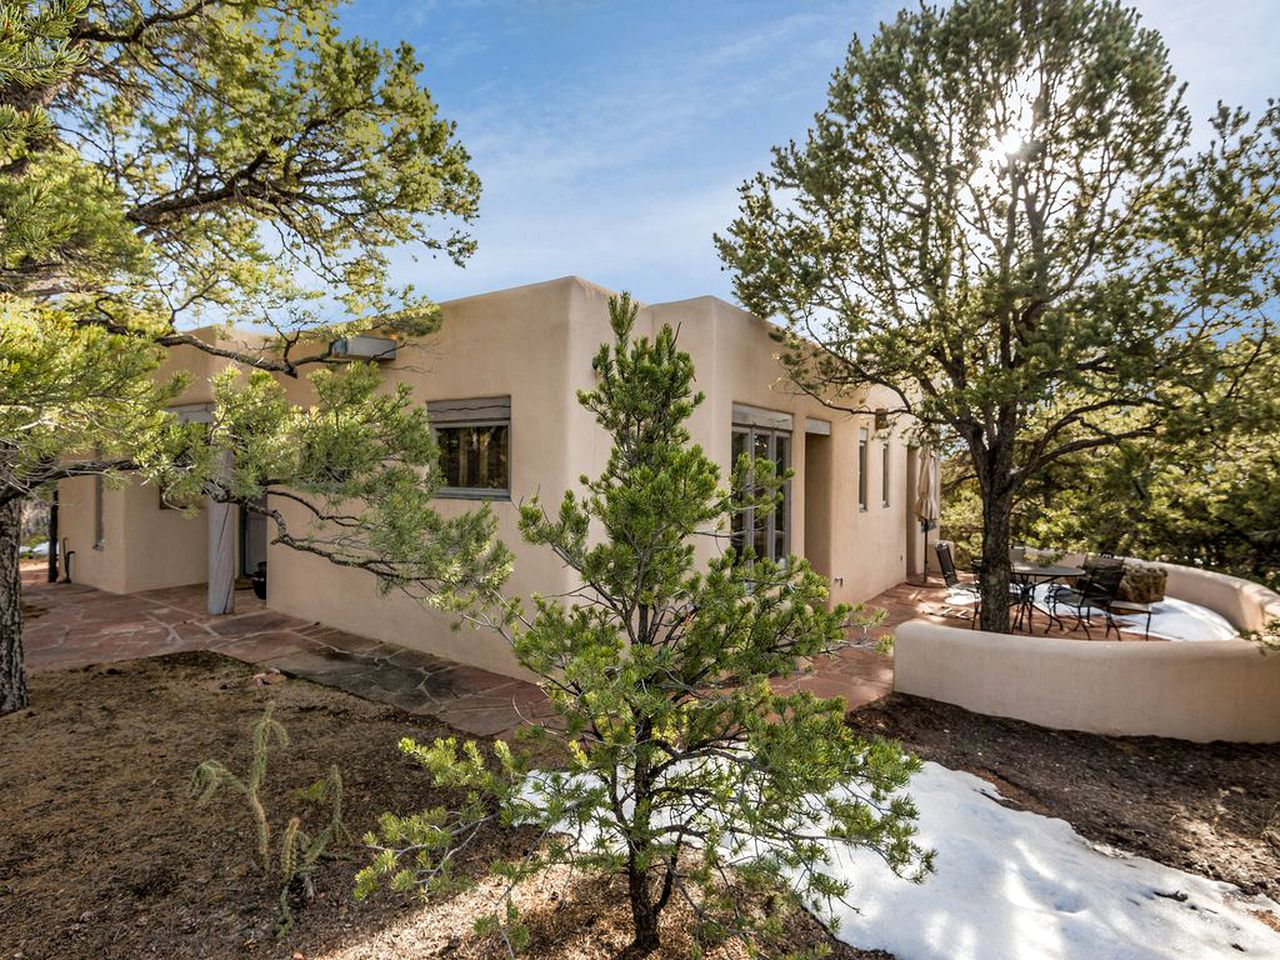 Vacation Rentals (Santa Fe, New Mexico, United States)